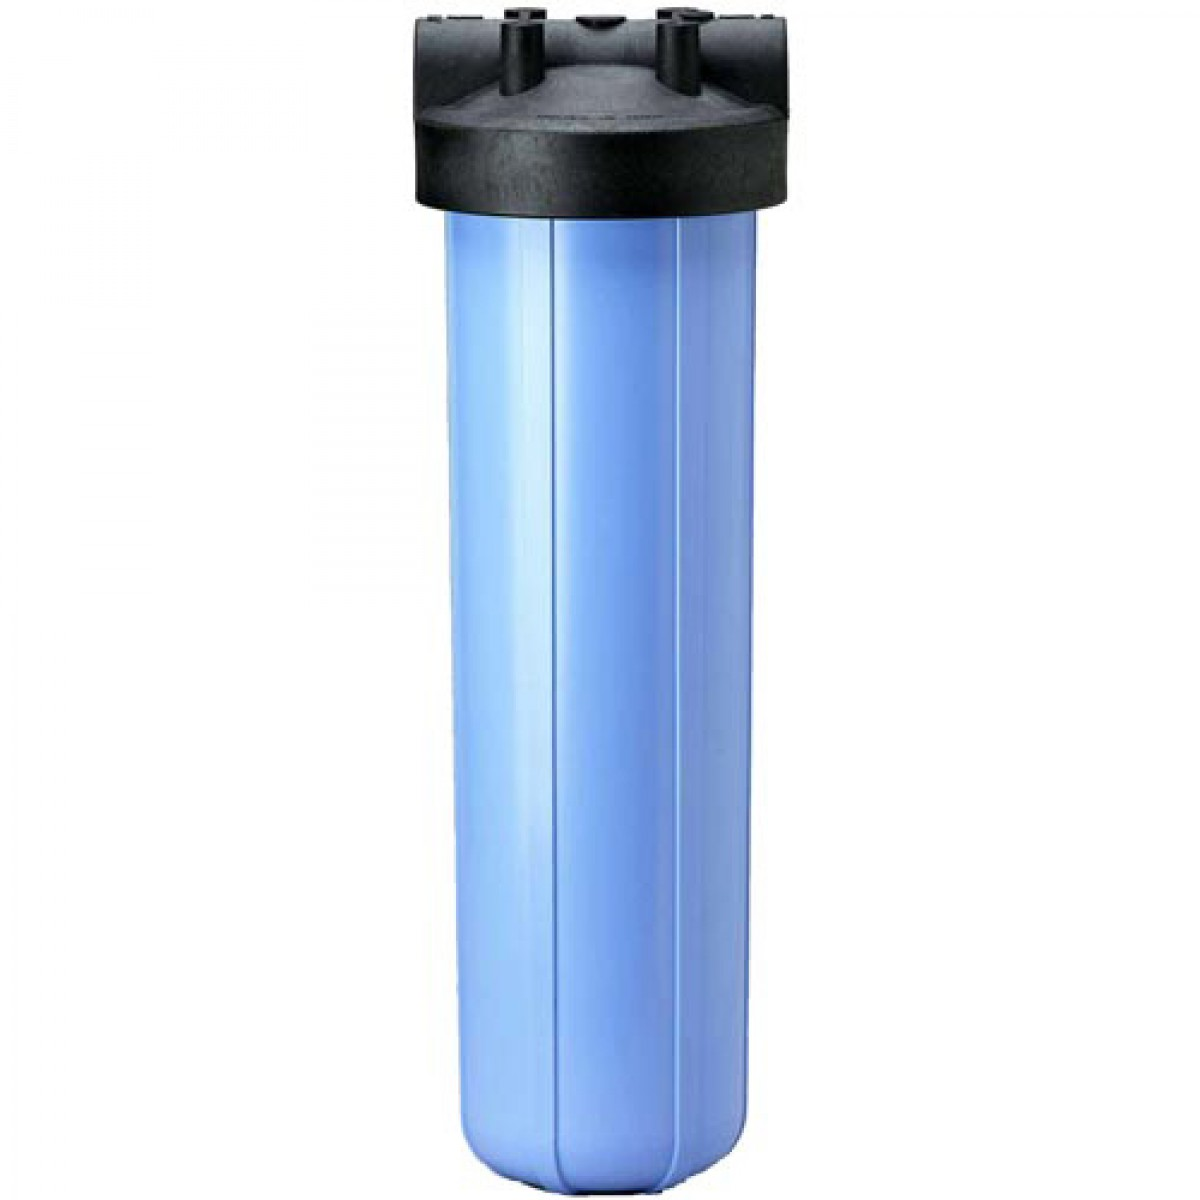 water puification Reverse osmosis (ro) is a water purification technology that uses a semipermeable membrane to remove ions, molecules and larger particles from drinking water.